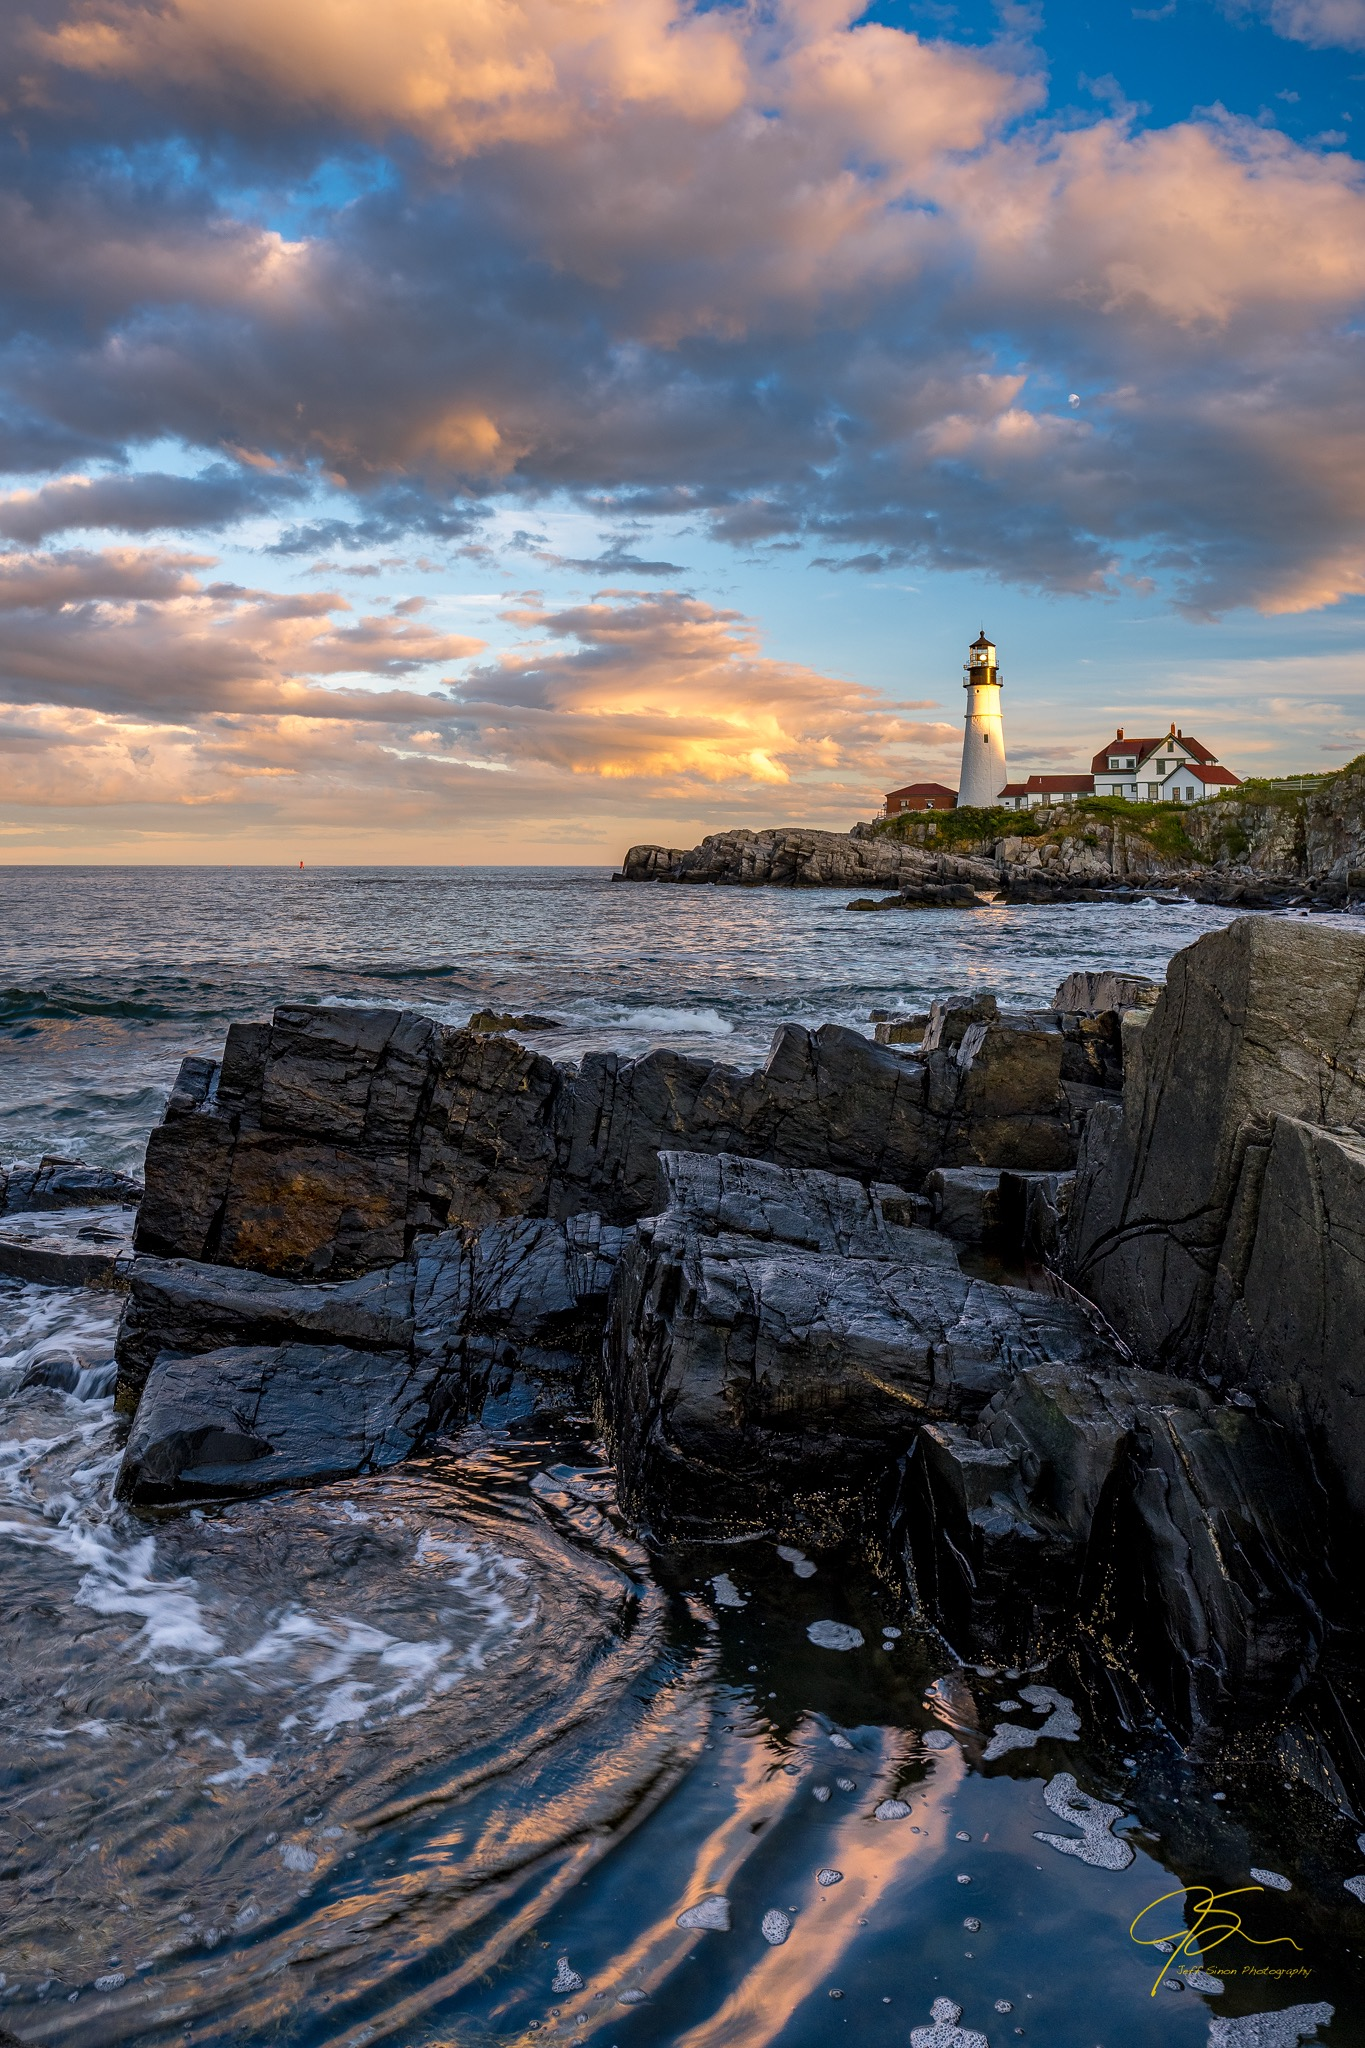 Portland head light with a dramatic sunset sky and rocky foreground